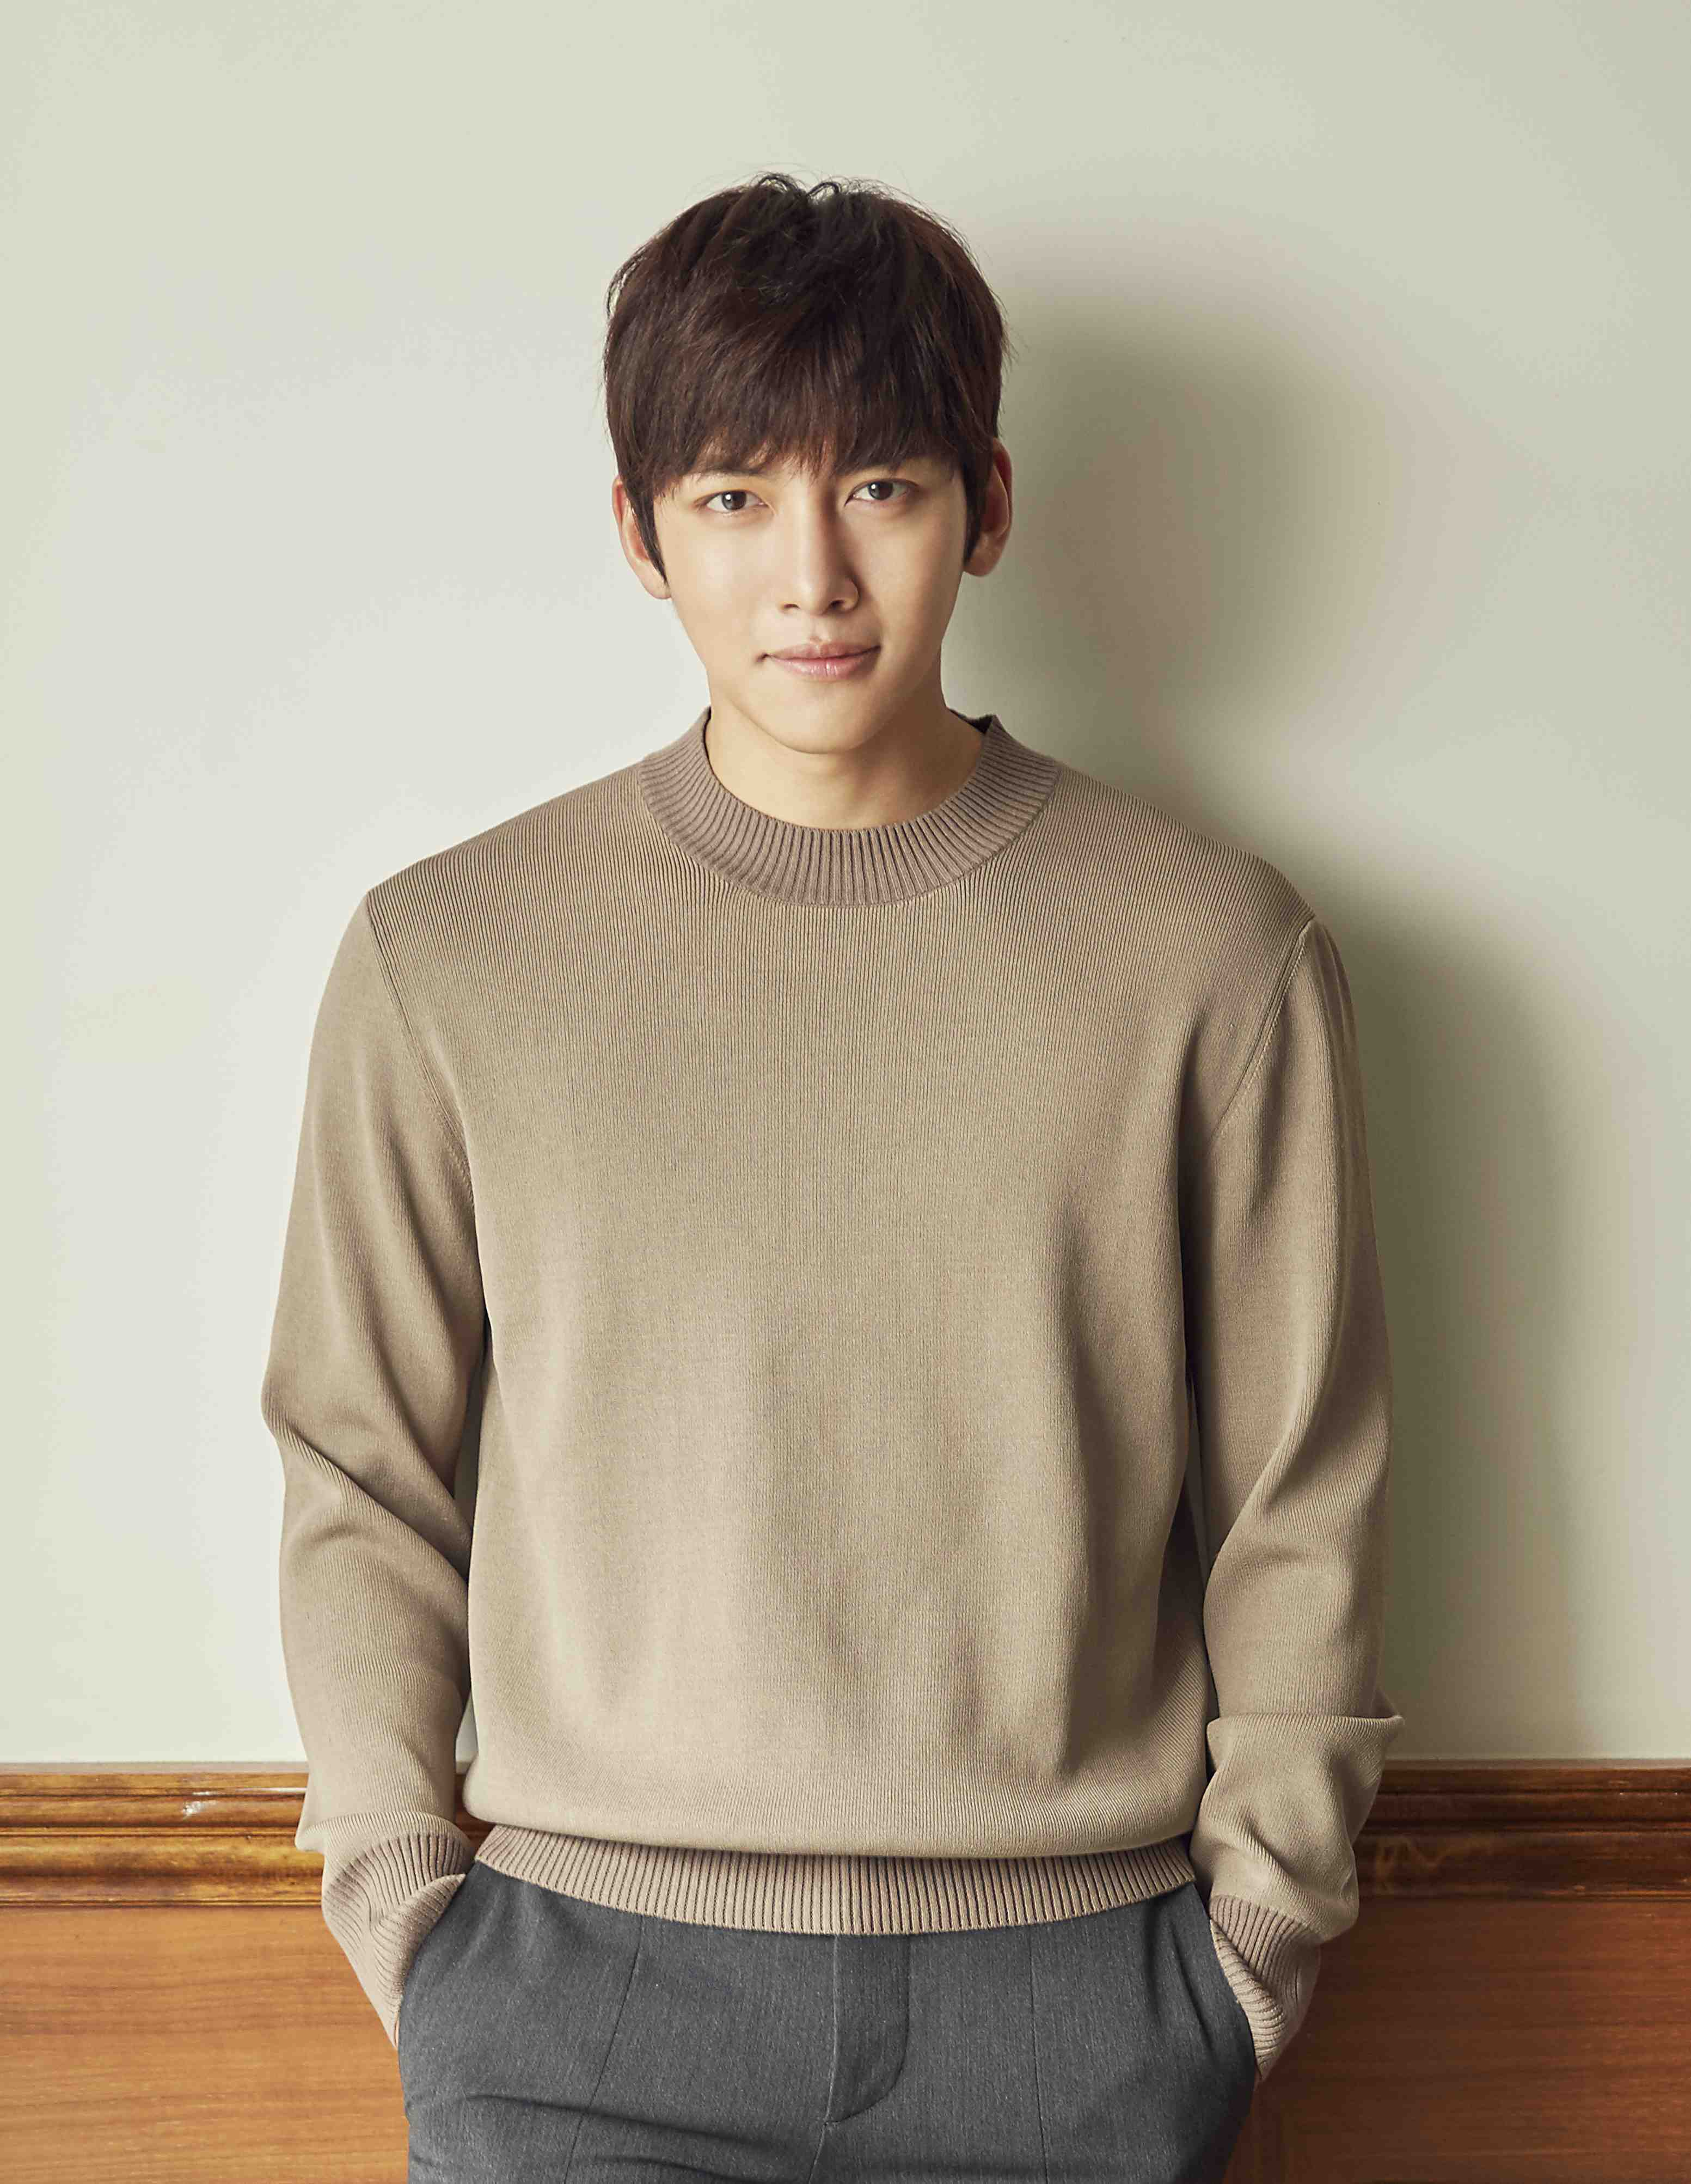 UPCOMING EVENT] Ji Chang Wook to make first public appearance as